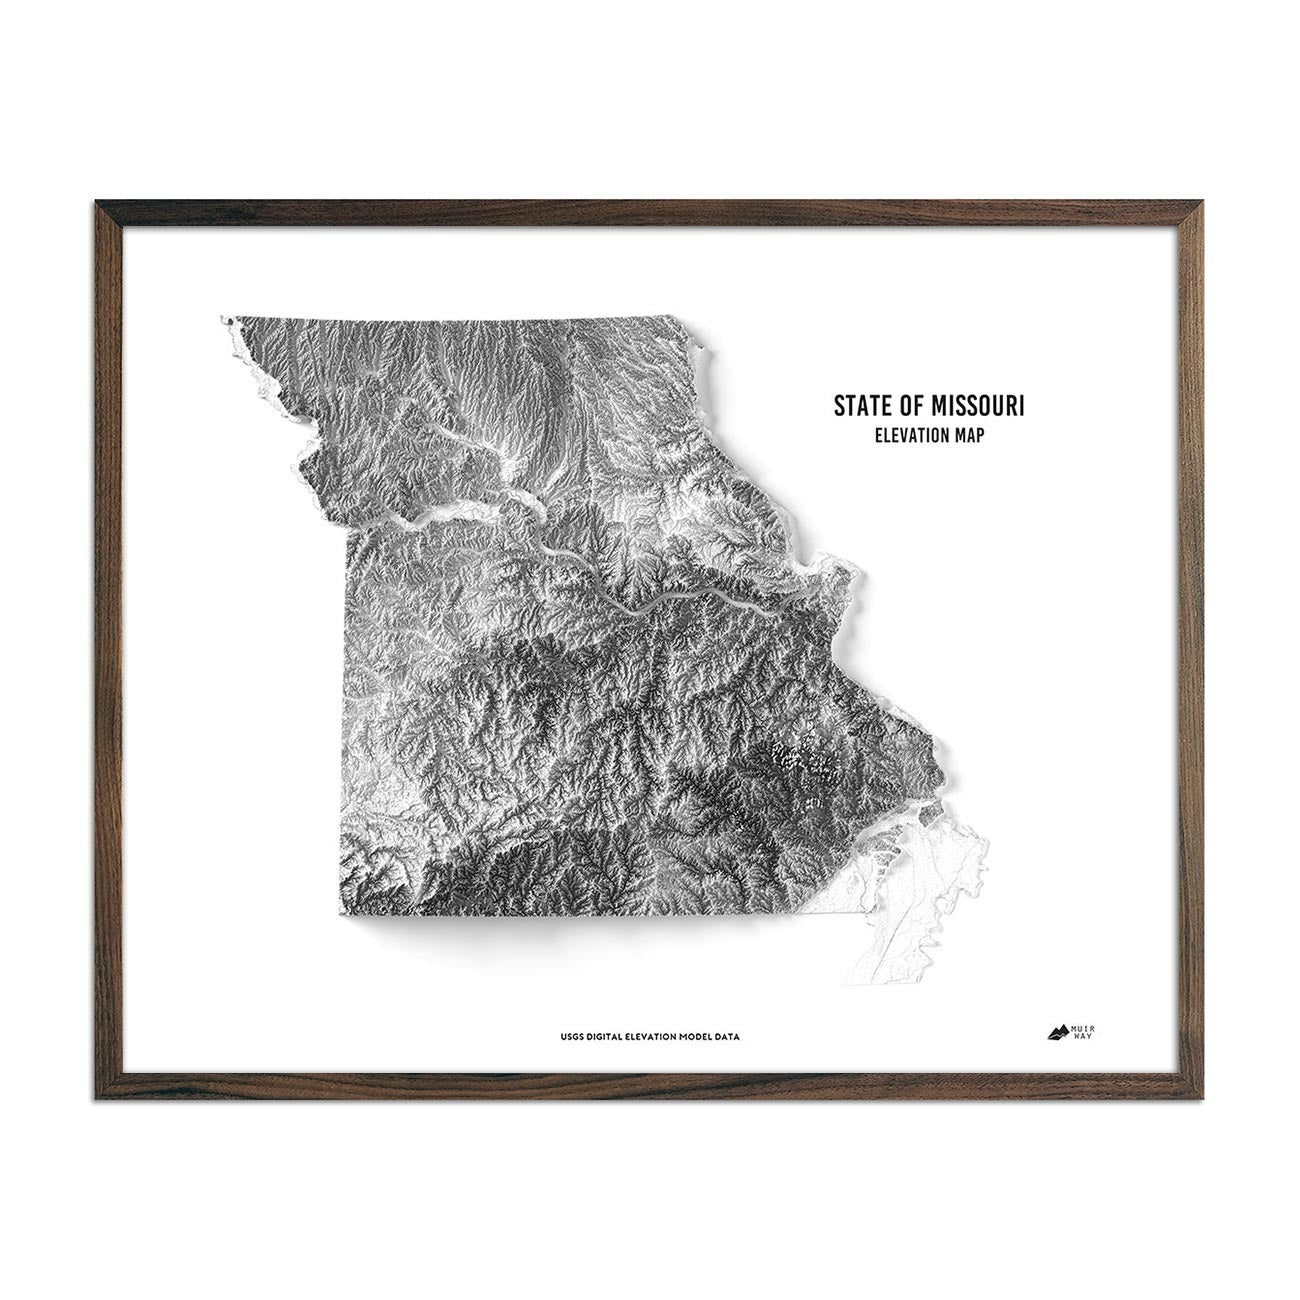 Missouri Elevation Map